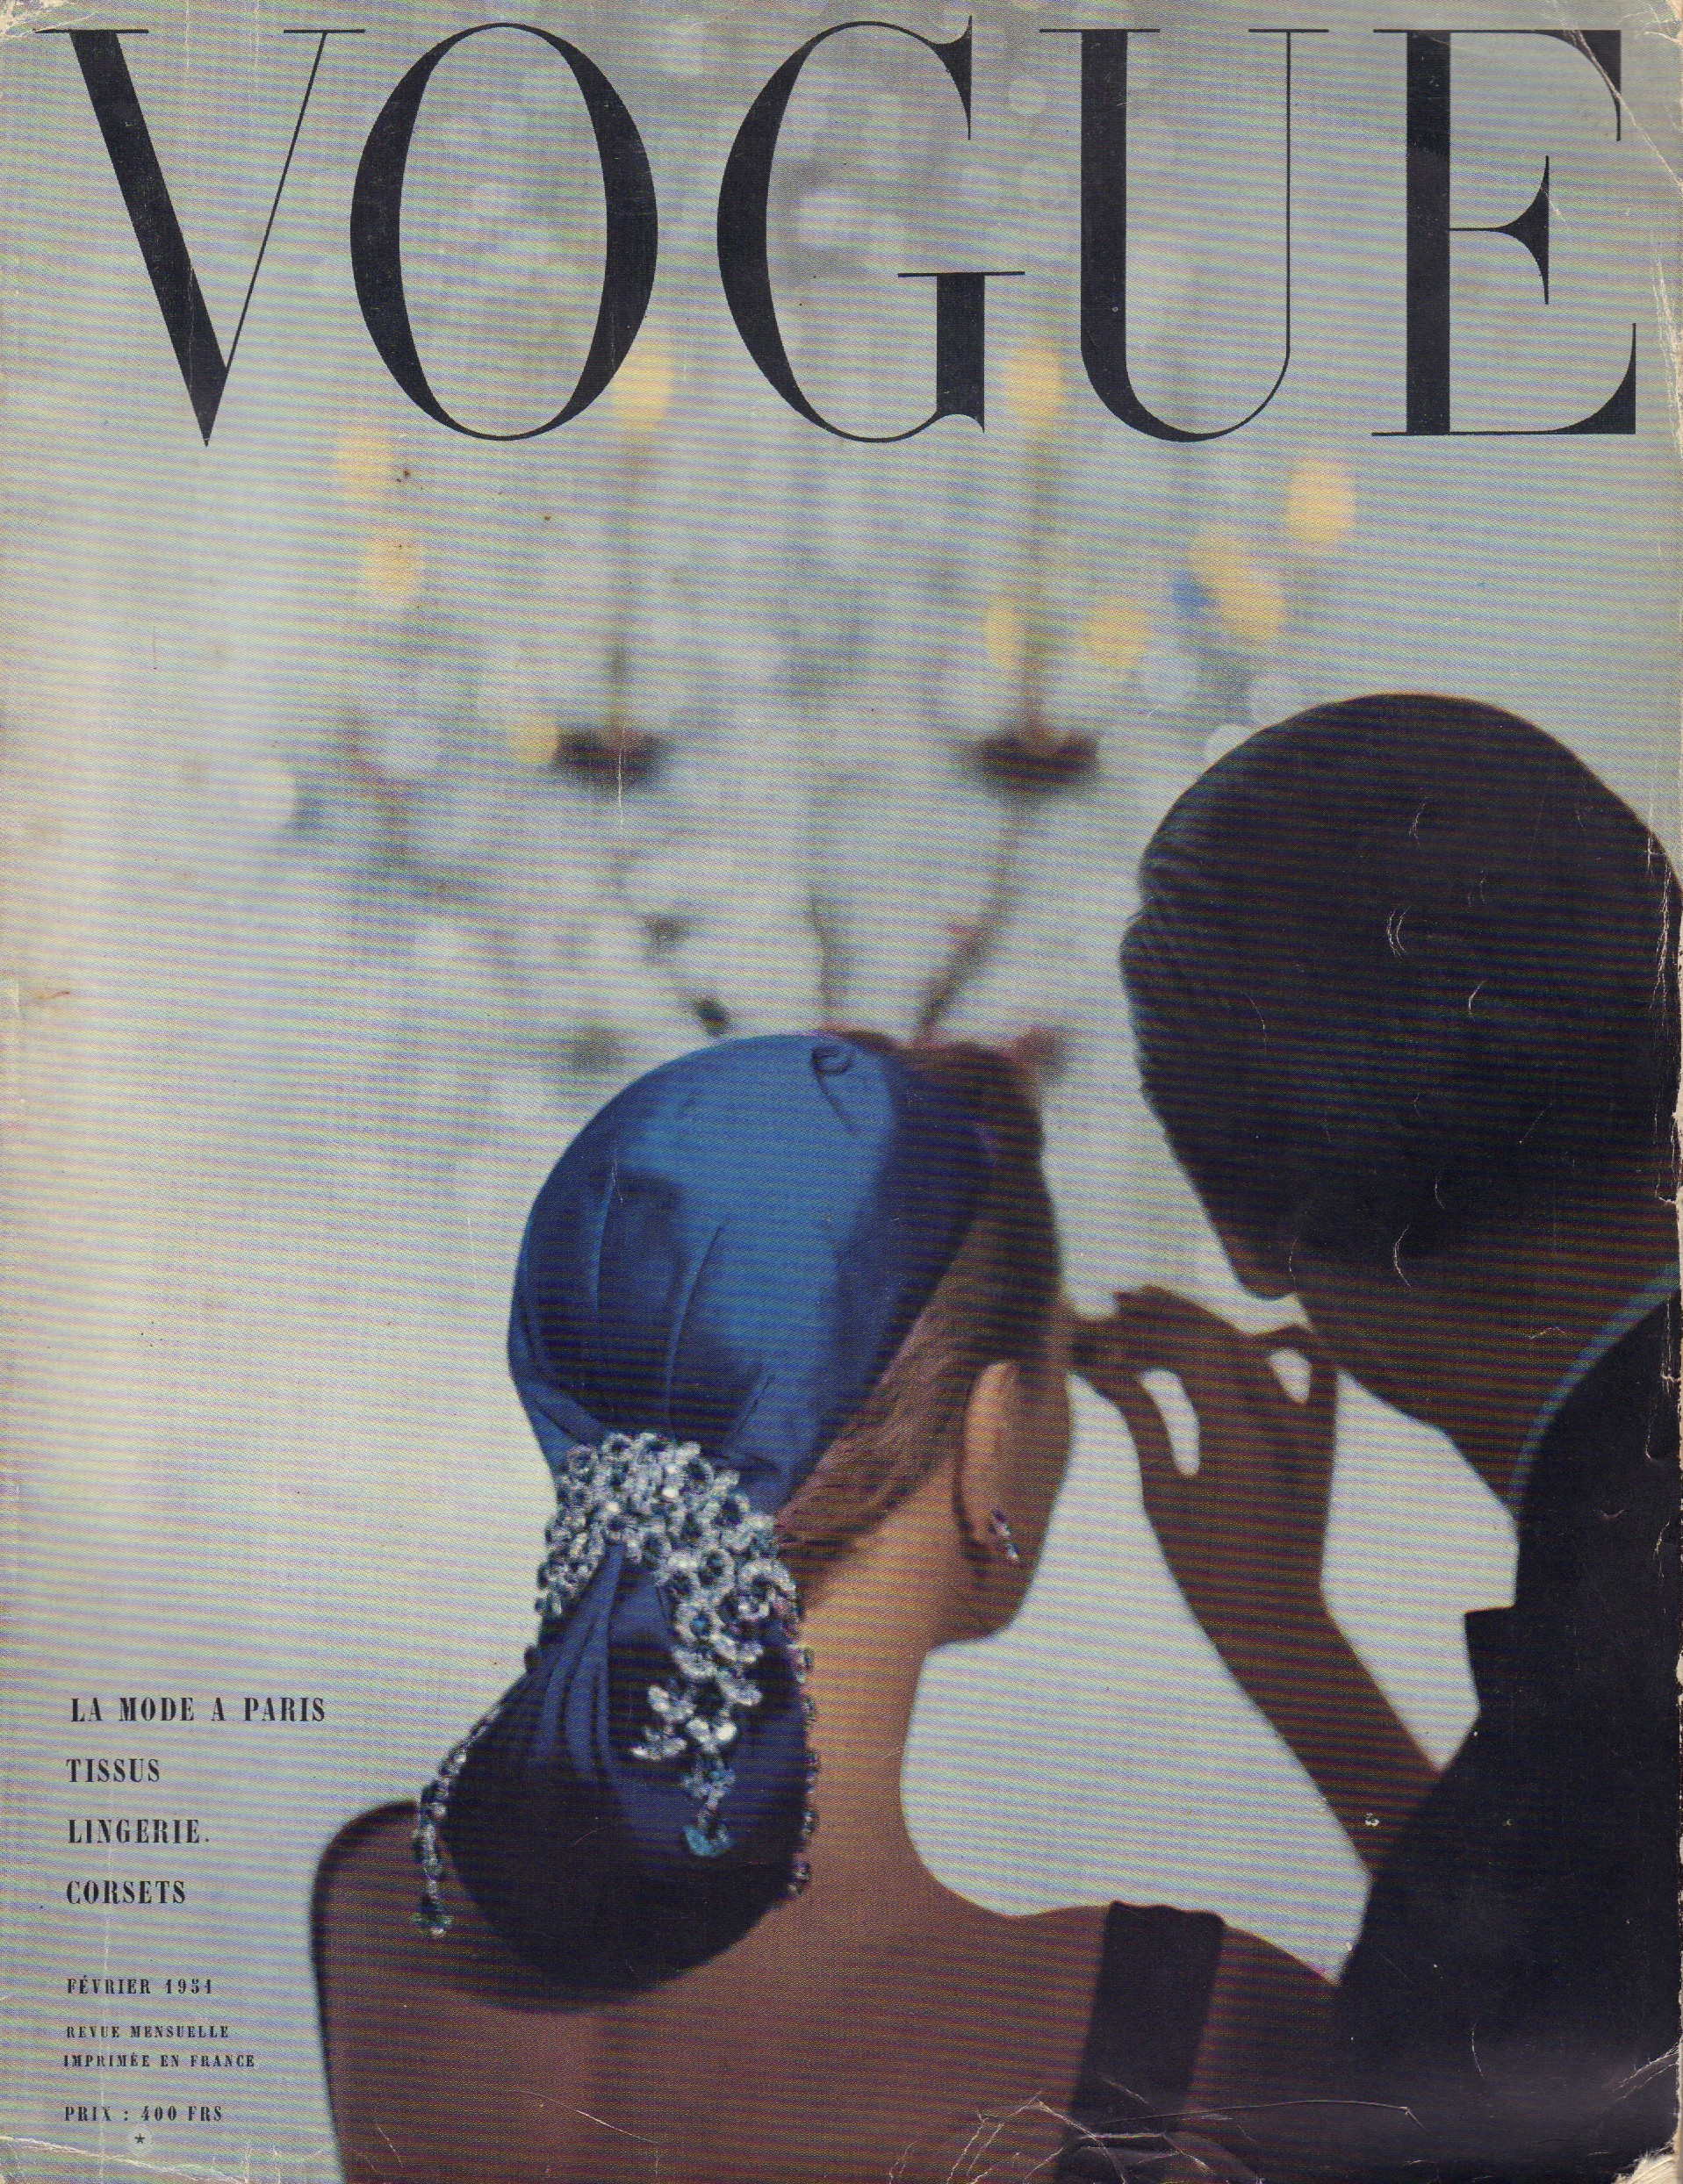 Image for Vogue Fevrier 1951 - French edition (February)